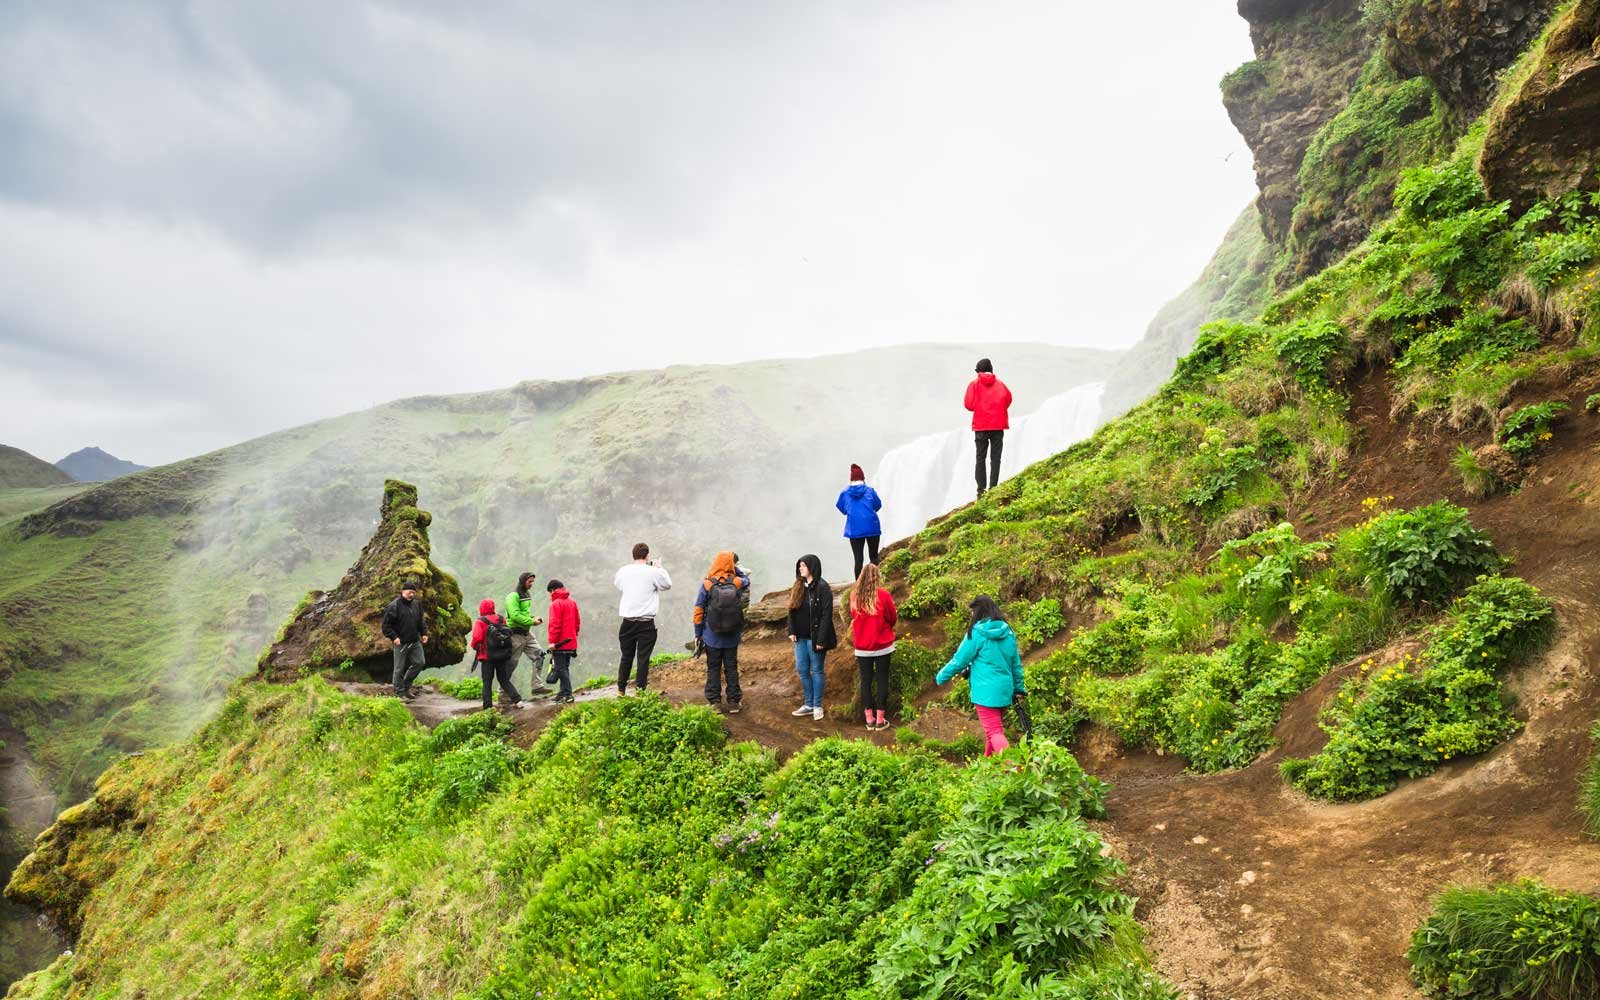 New Tourism Tax Could Make Going to Iceland More Expensive